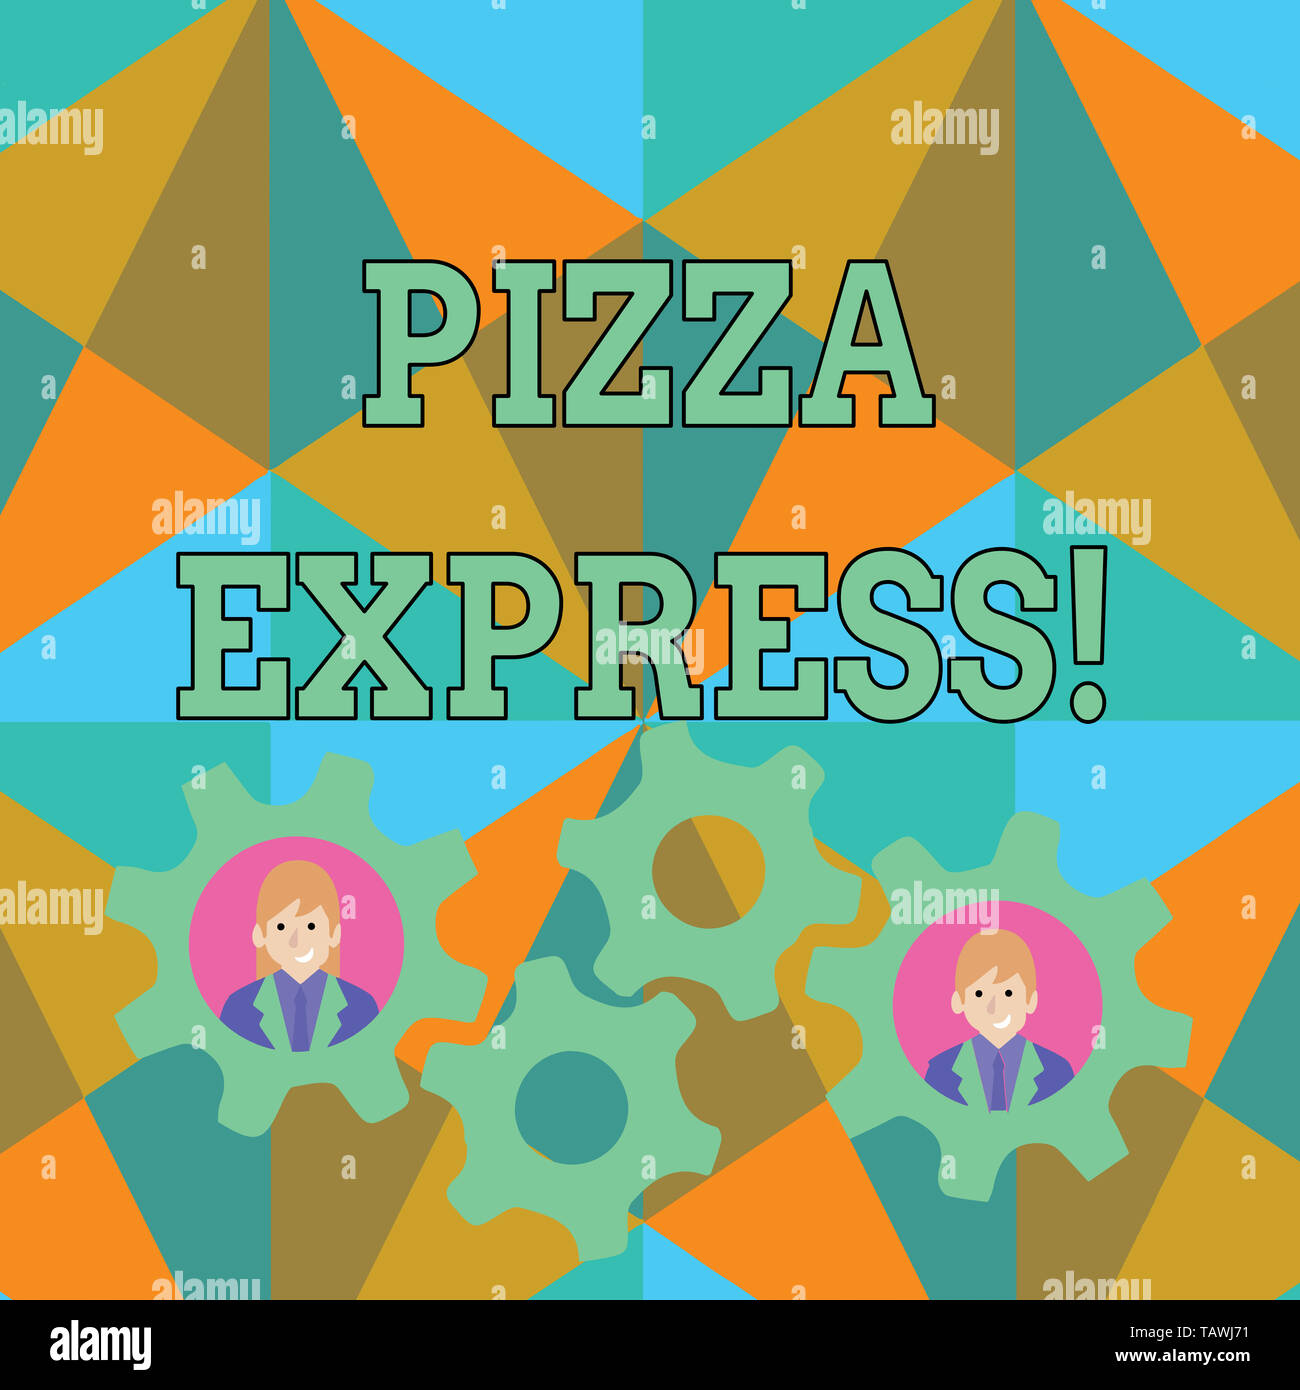 Pizza Express Pizza Restaurant People Stock Photos Pizza